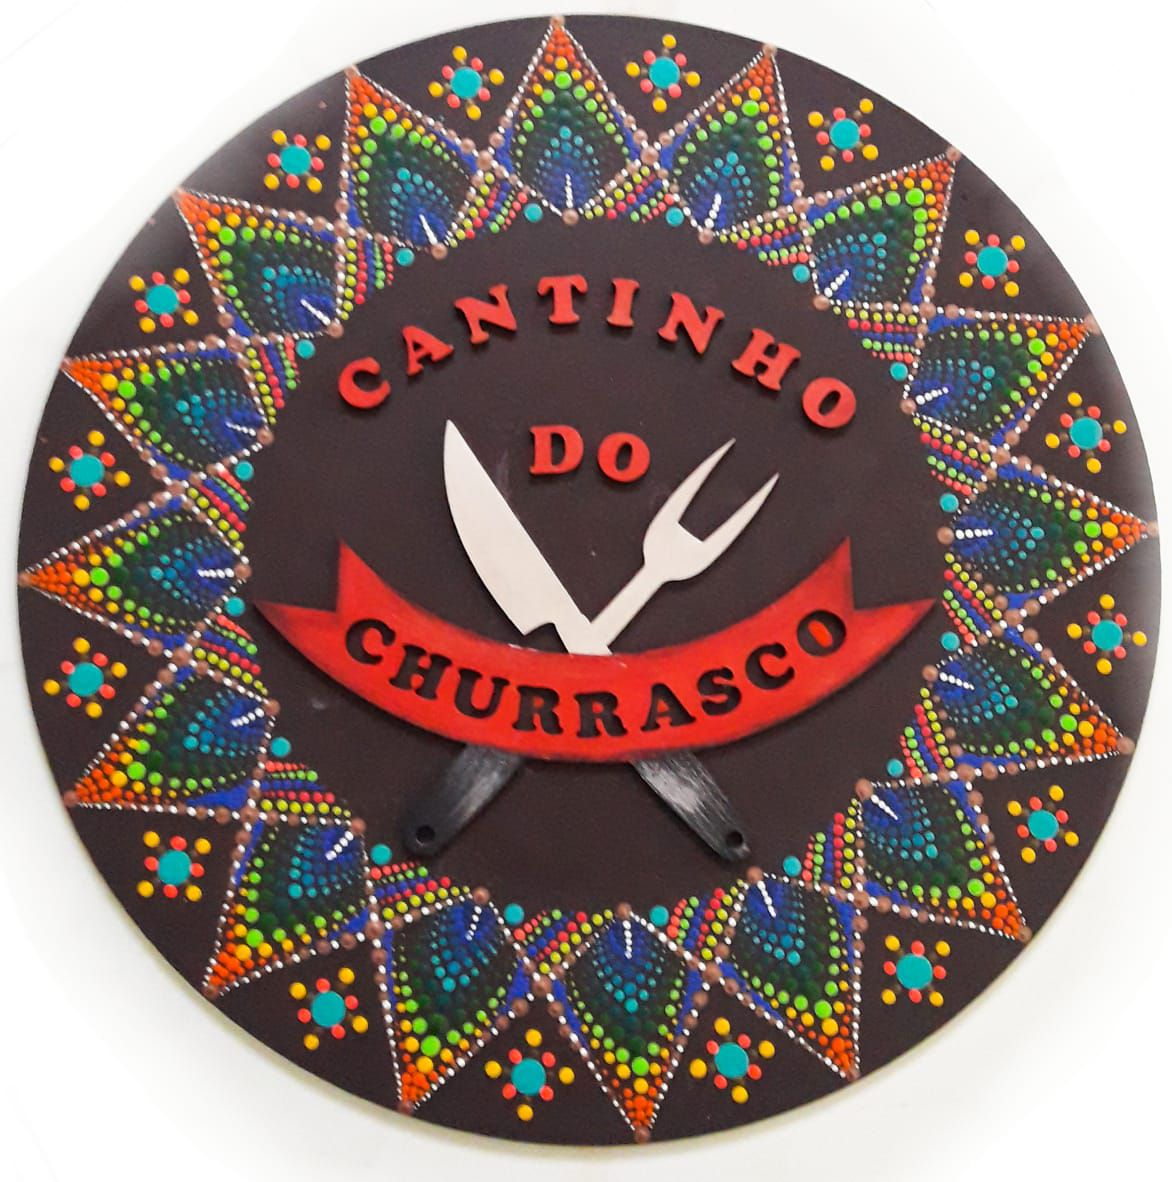 Placa Decorativa Cantinho do Churrasco Pintura Livre 35 cm CC-60